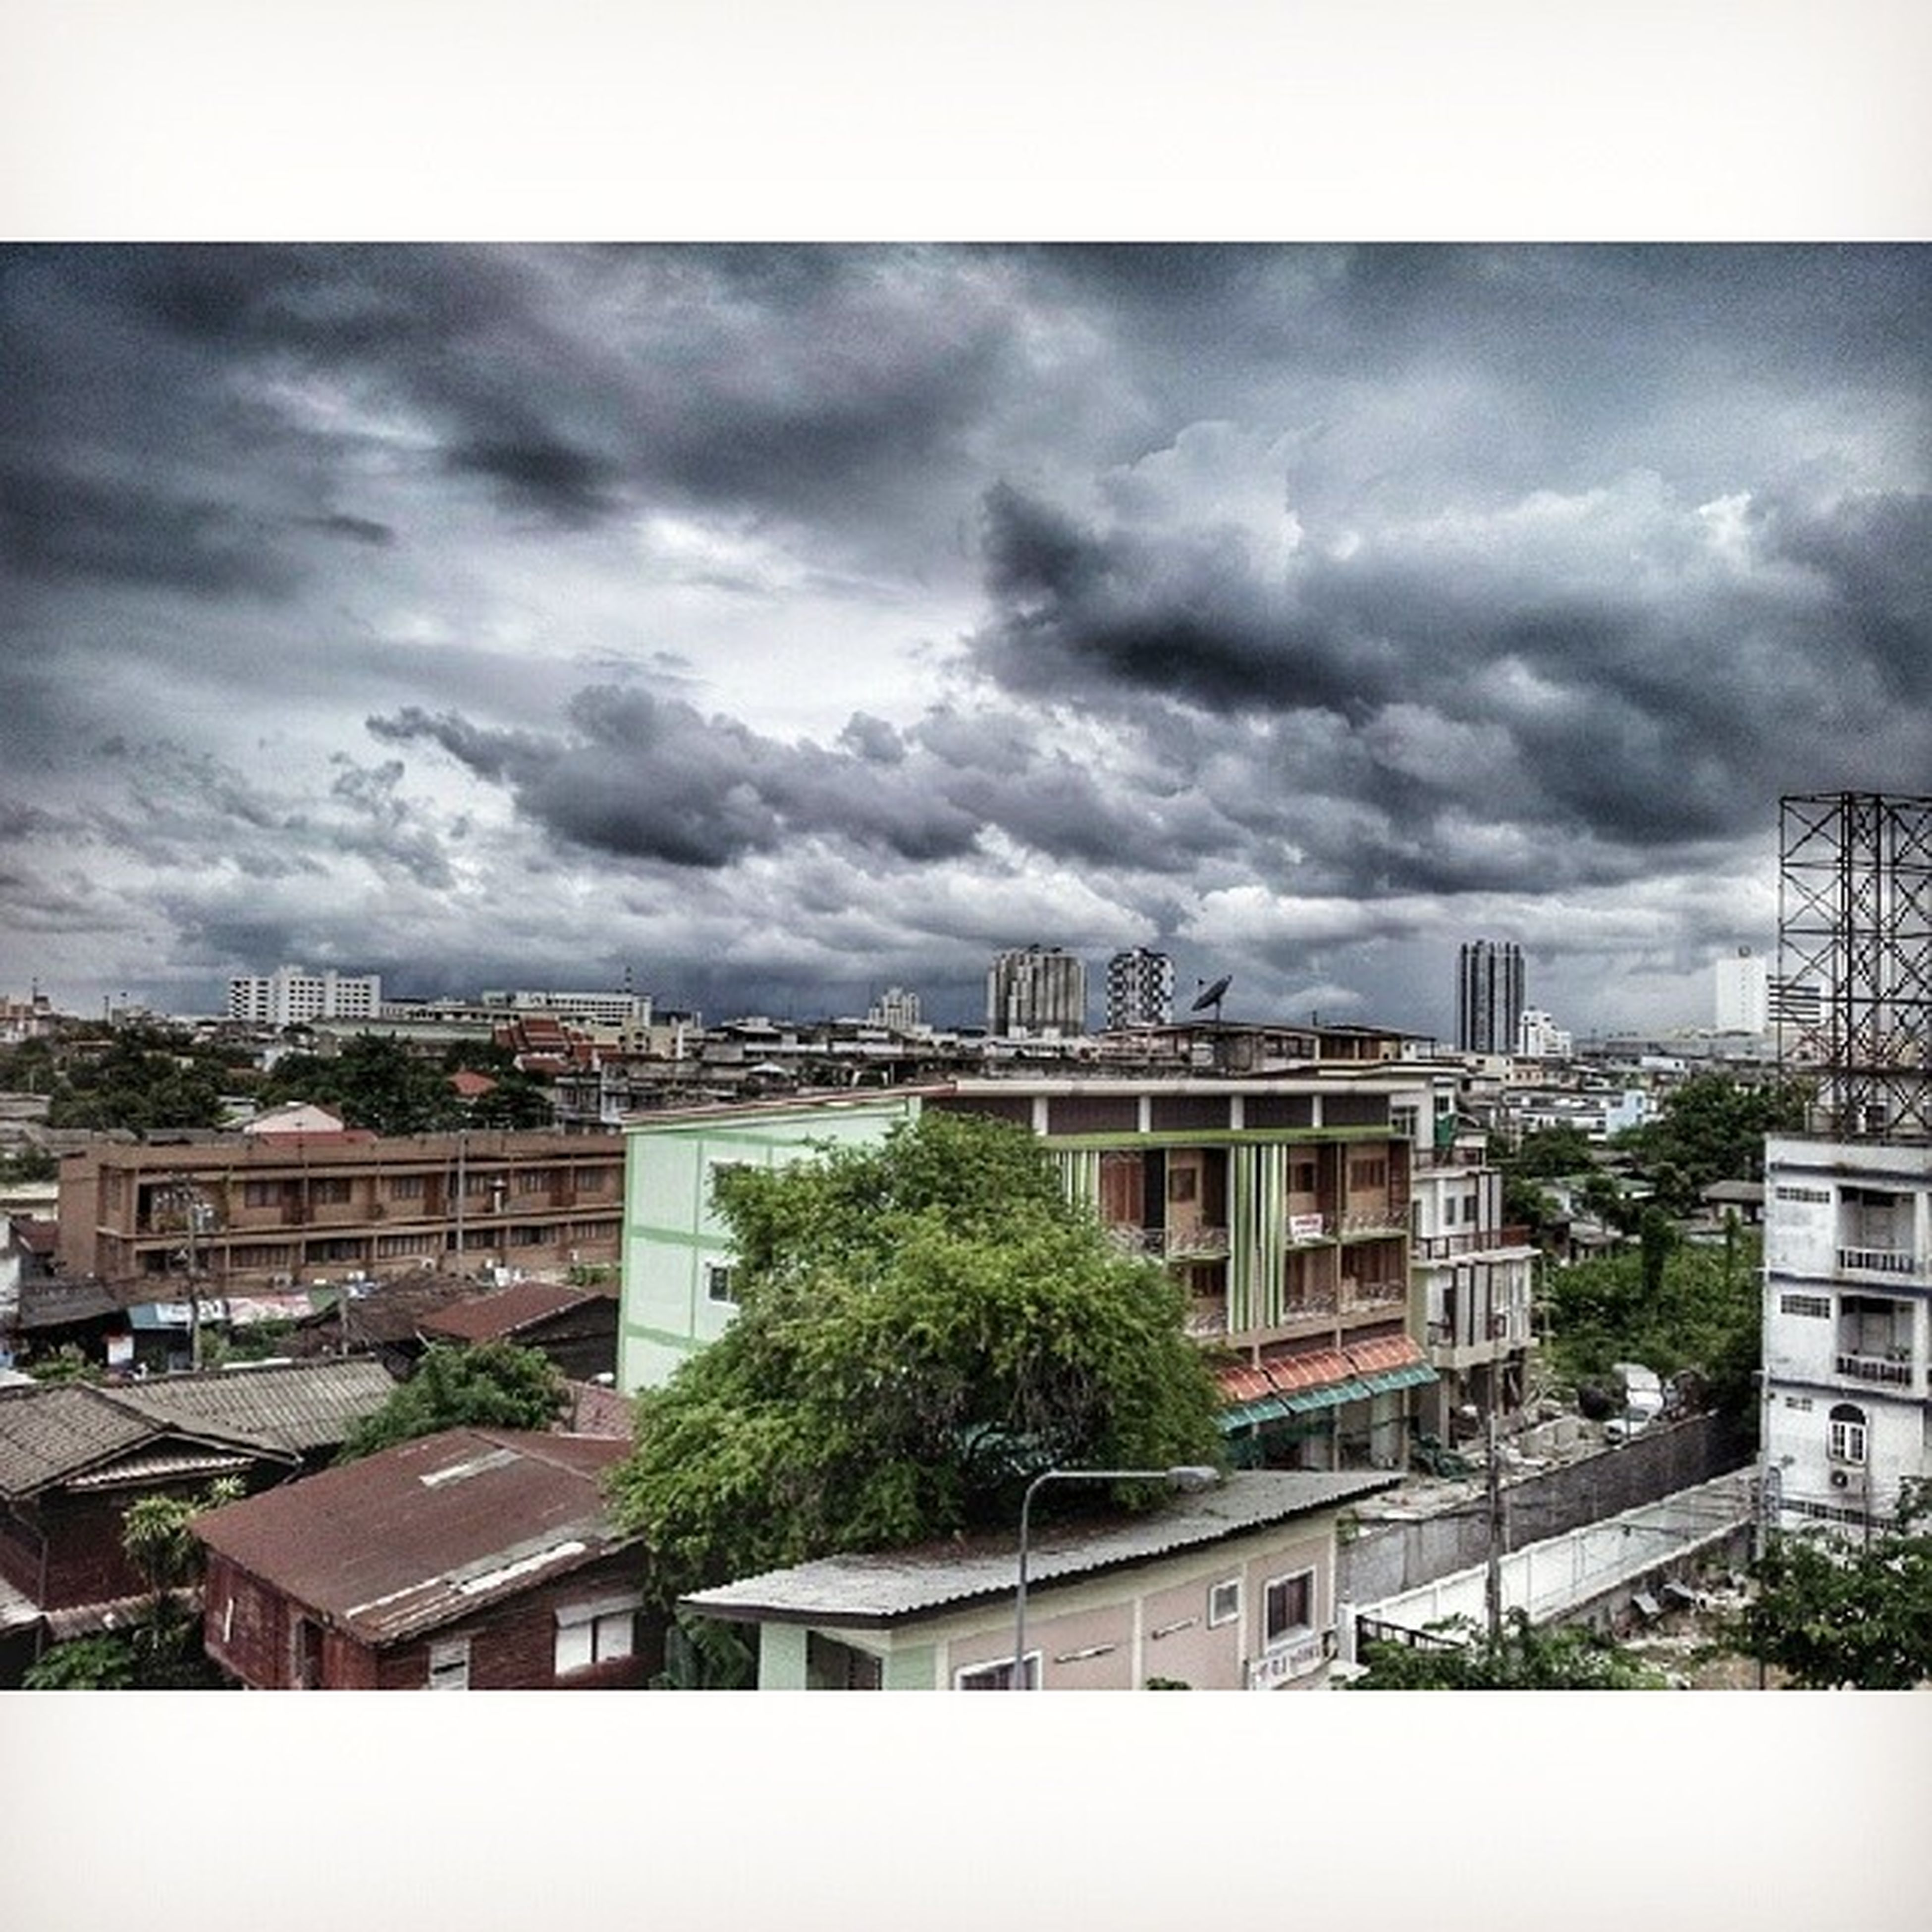 architecture, building exterior, built structure, sky, transfer print, cloud - sky, city, cloudy, auto post production filter, cityscape, cloud, overcast, residential building, tree, residential district, weather, residential structure, storm cloud, building, outdoors